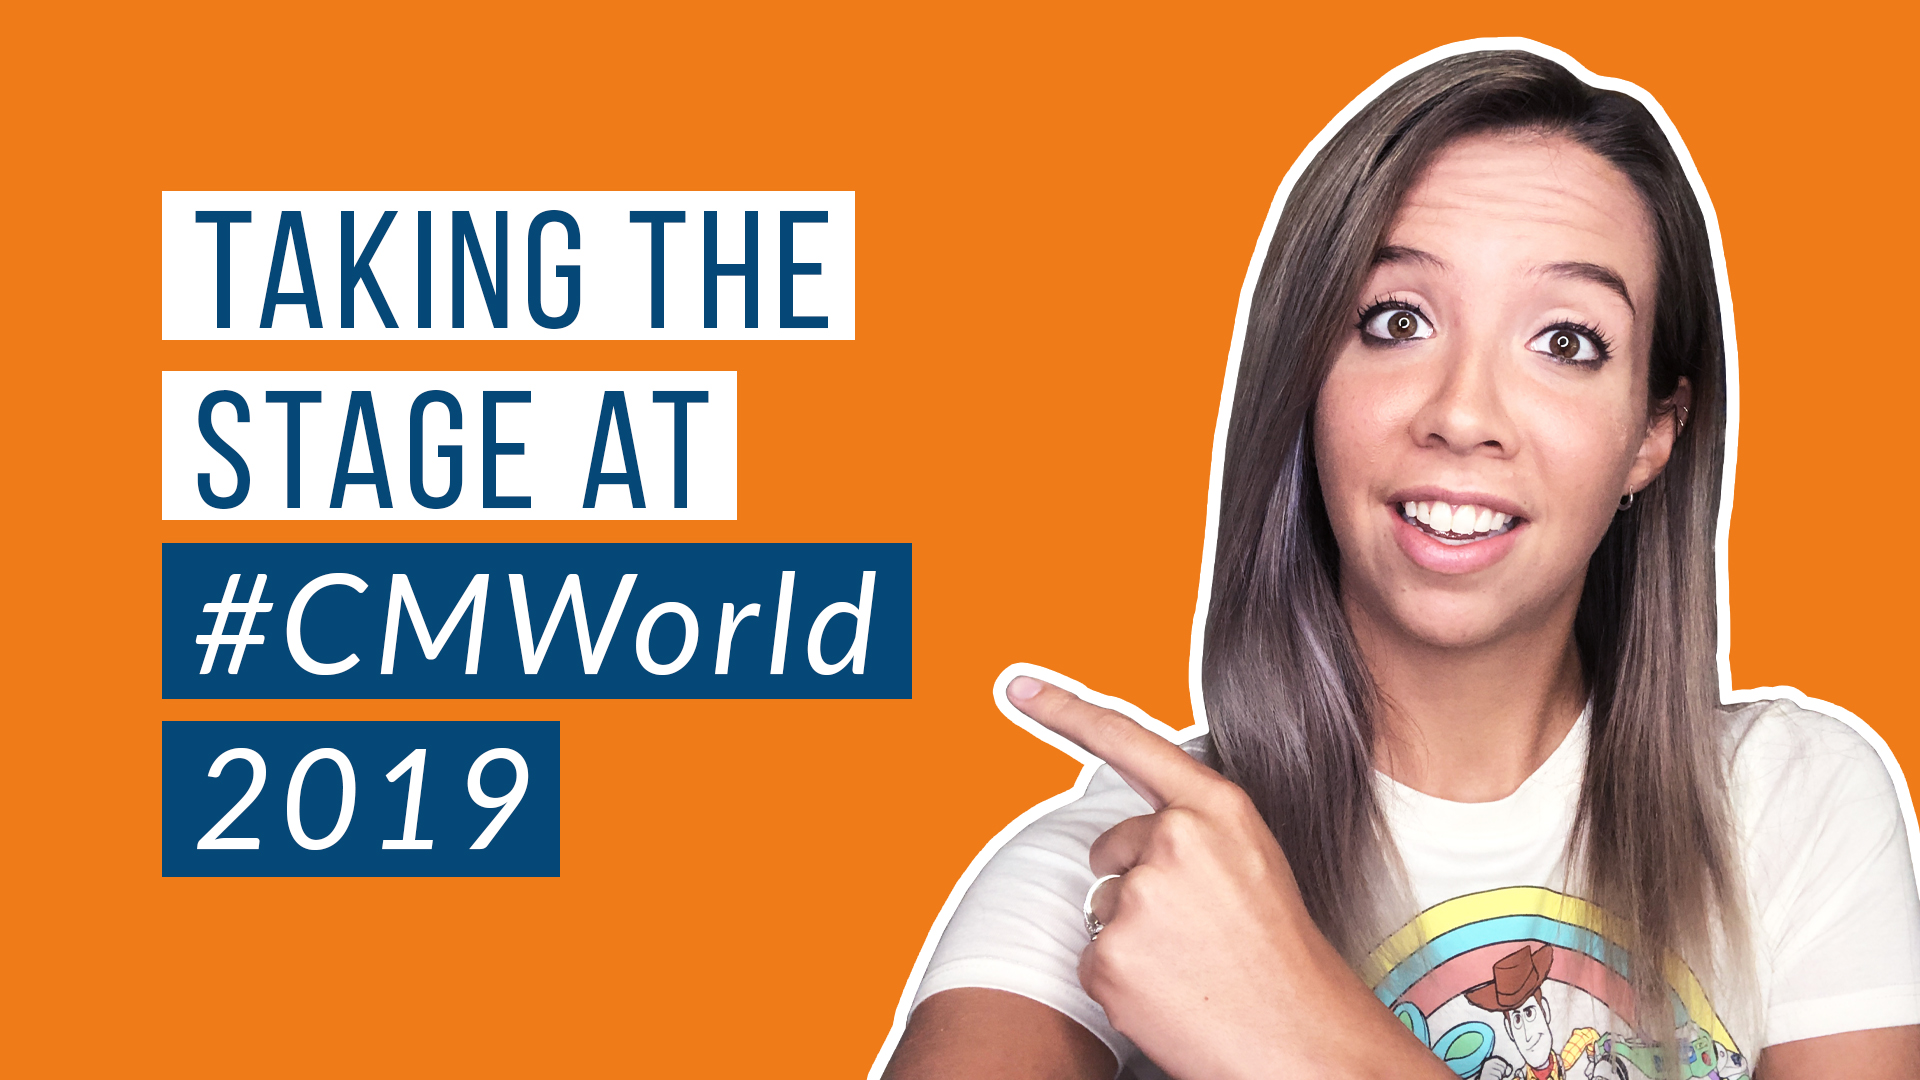 julia at cmworld